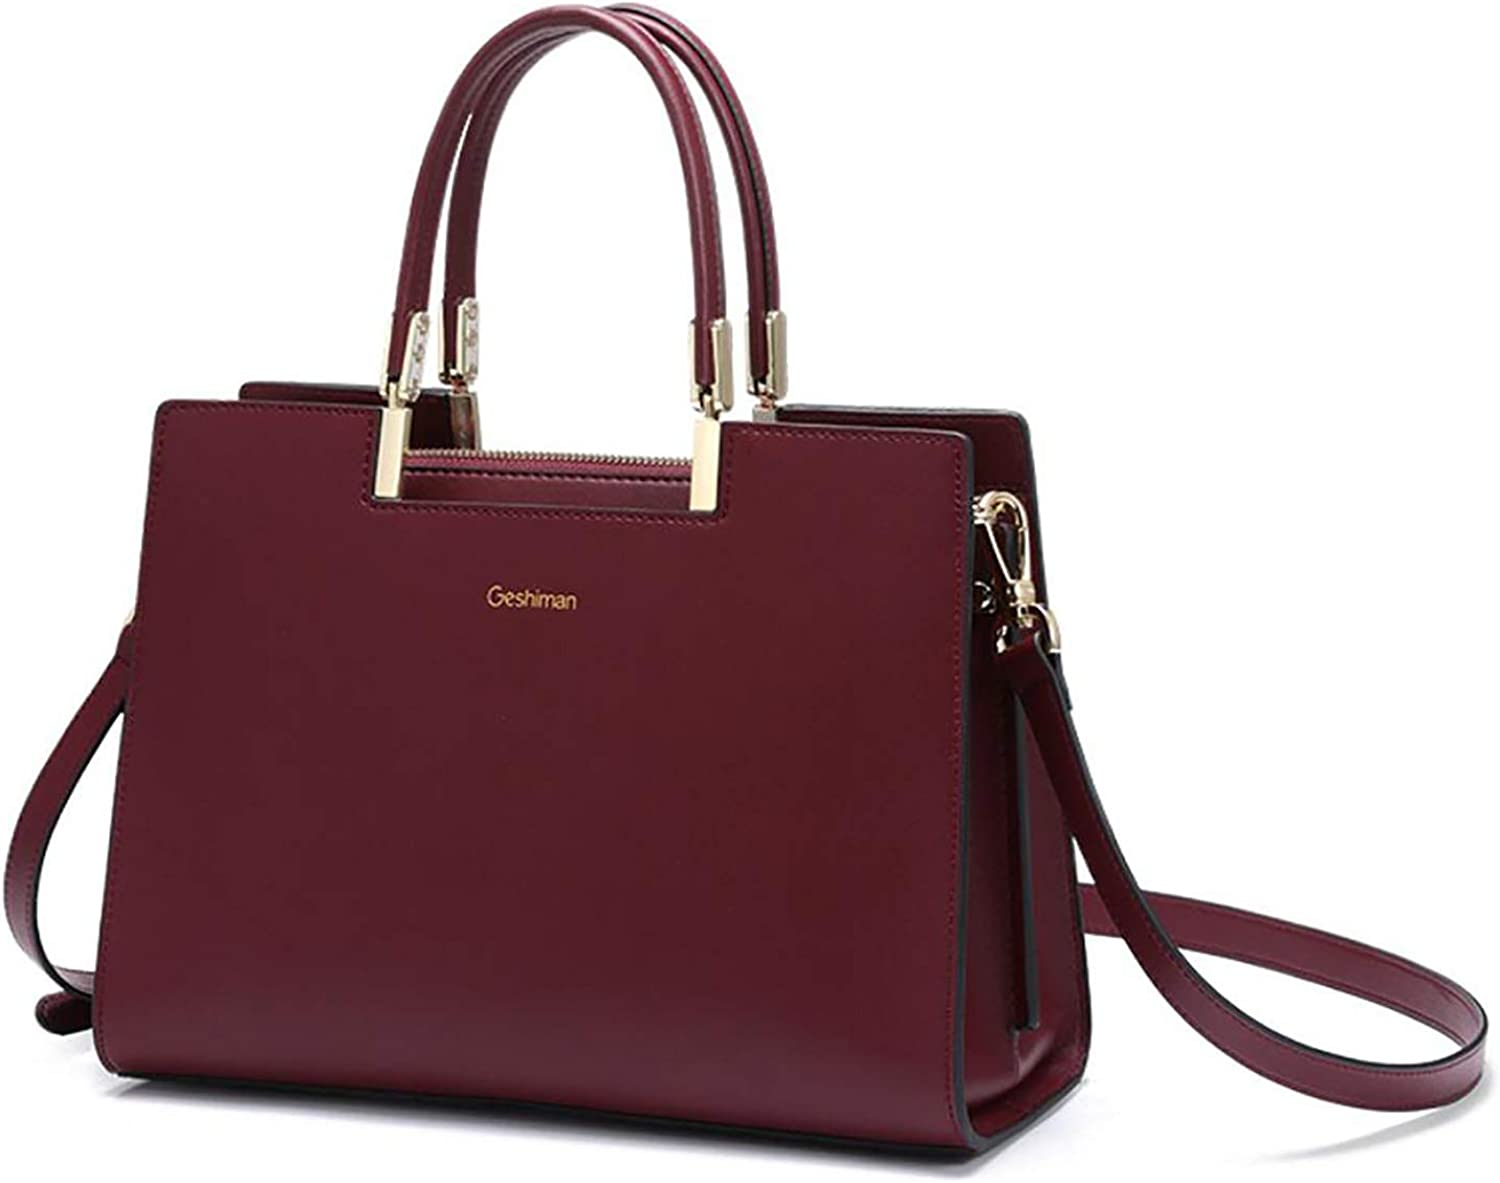 Ladies leather Max 59% OFF 25% OFF handbags ladies and messenger bags